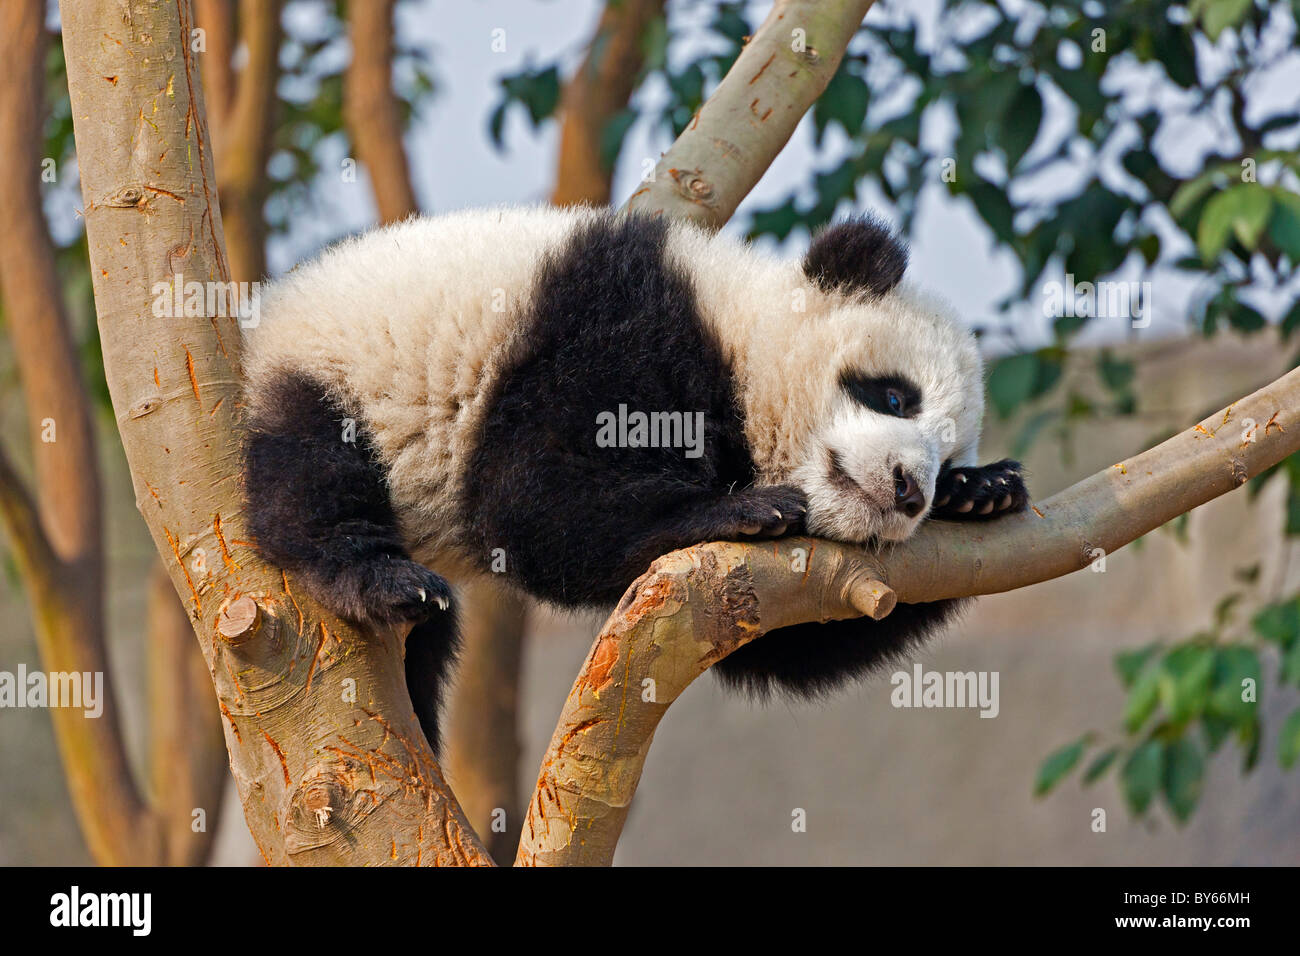 Young Giant Panda cub resting in tree at Chengdu Research Base of Giant Panda Breeding, China. JMH4385 - Stock Image